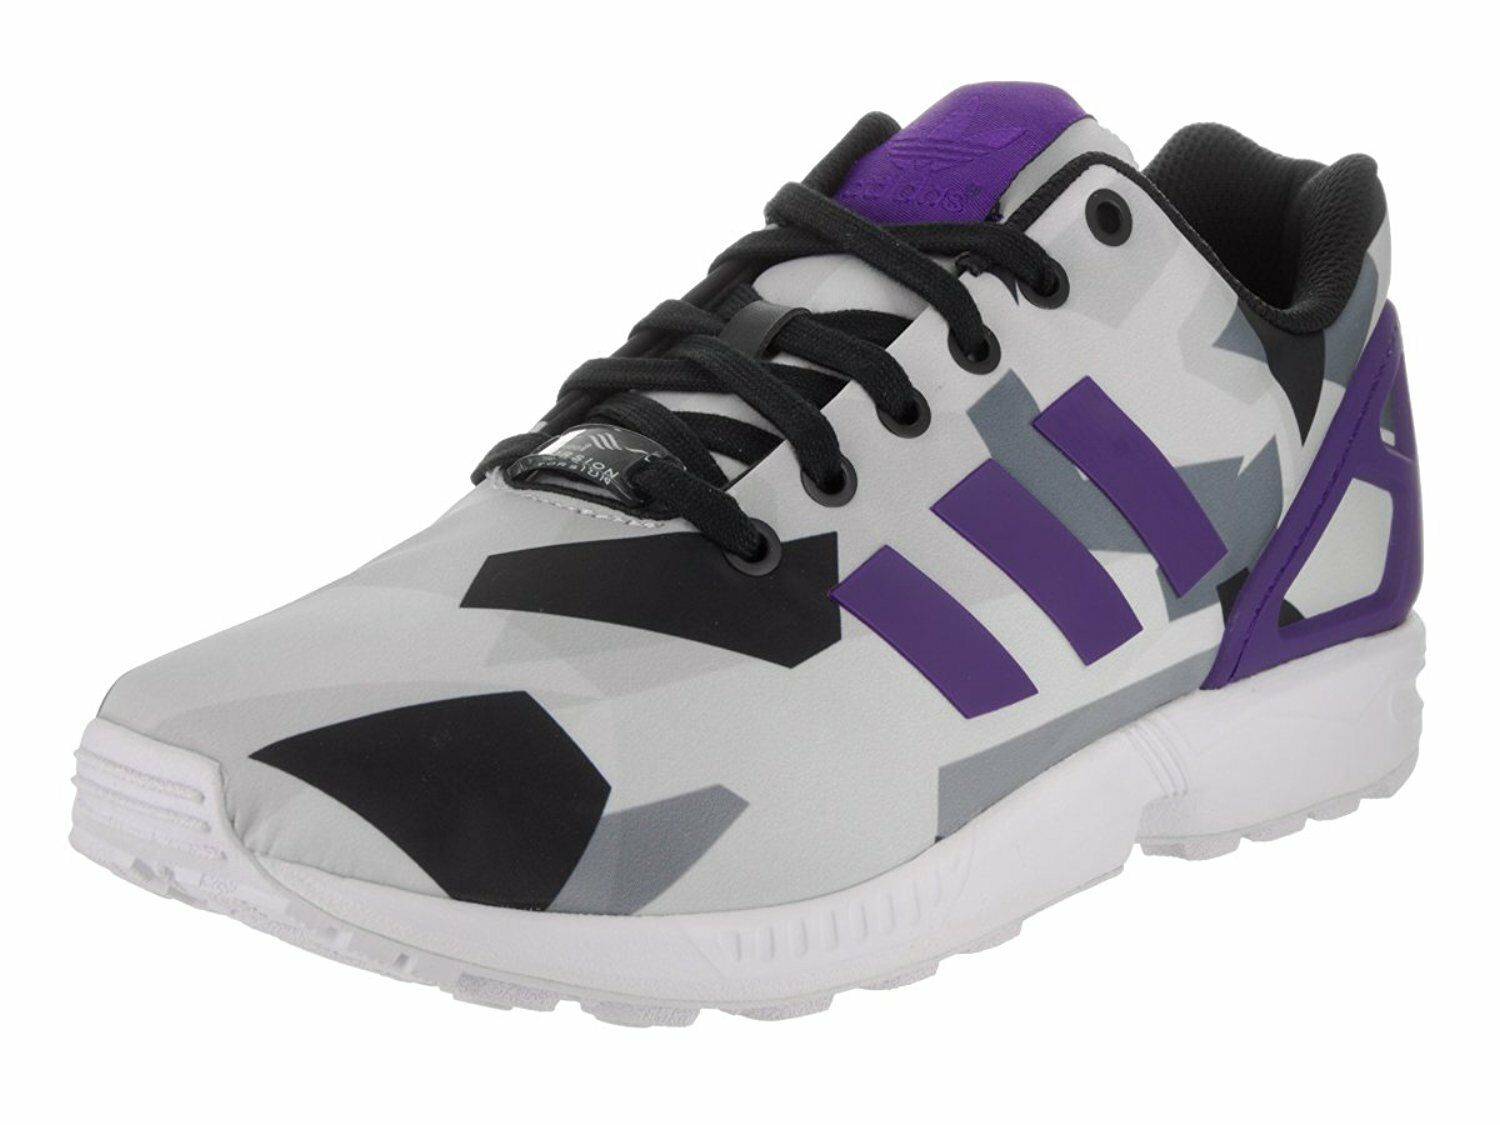 Adidas Mens ZX Flux  / PurpleRunning Athletic B34517- Pick Price reduction